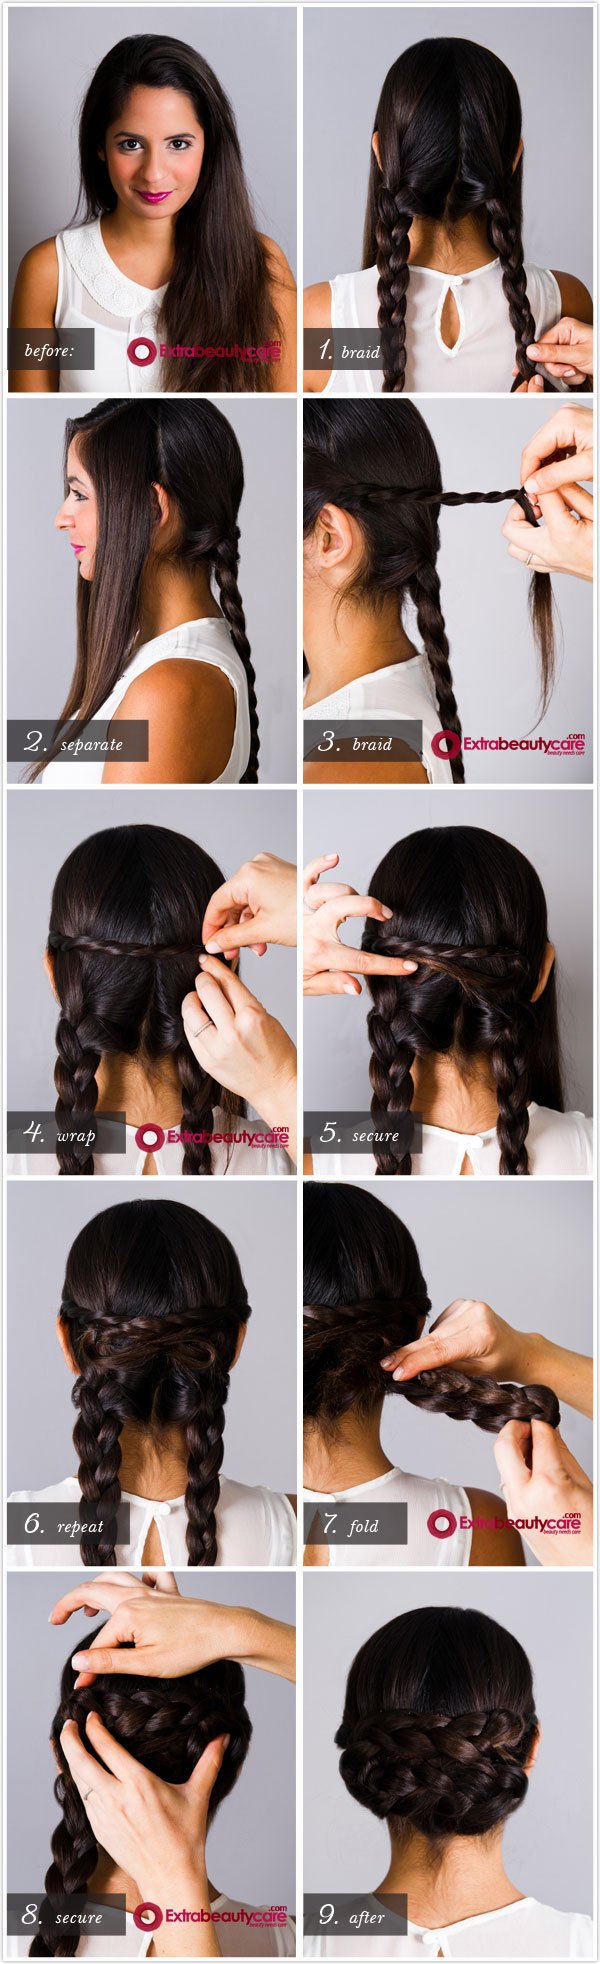 Simple Braided Chignon Hairstyle